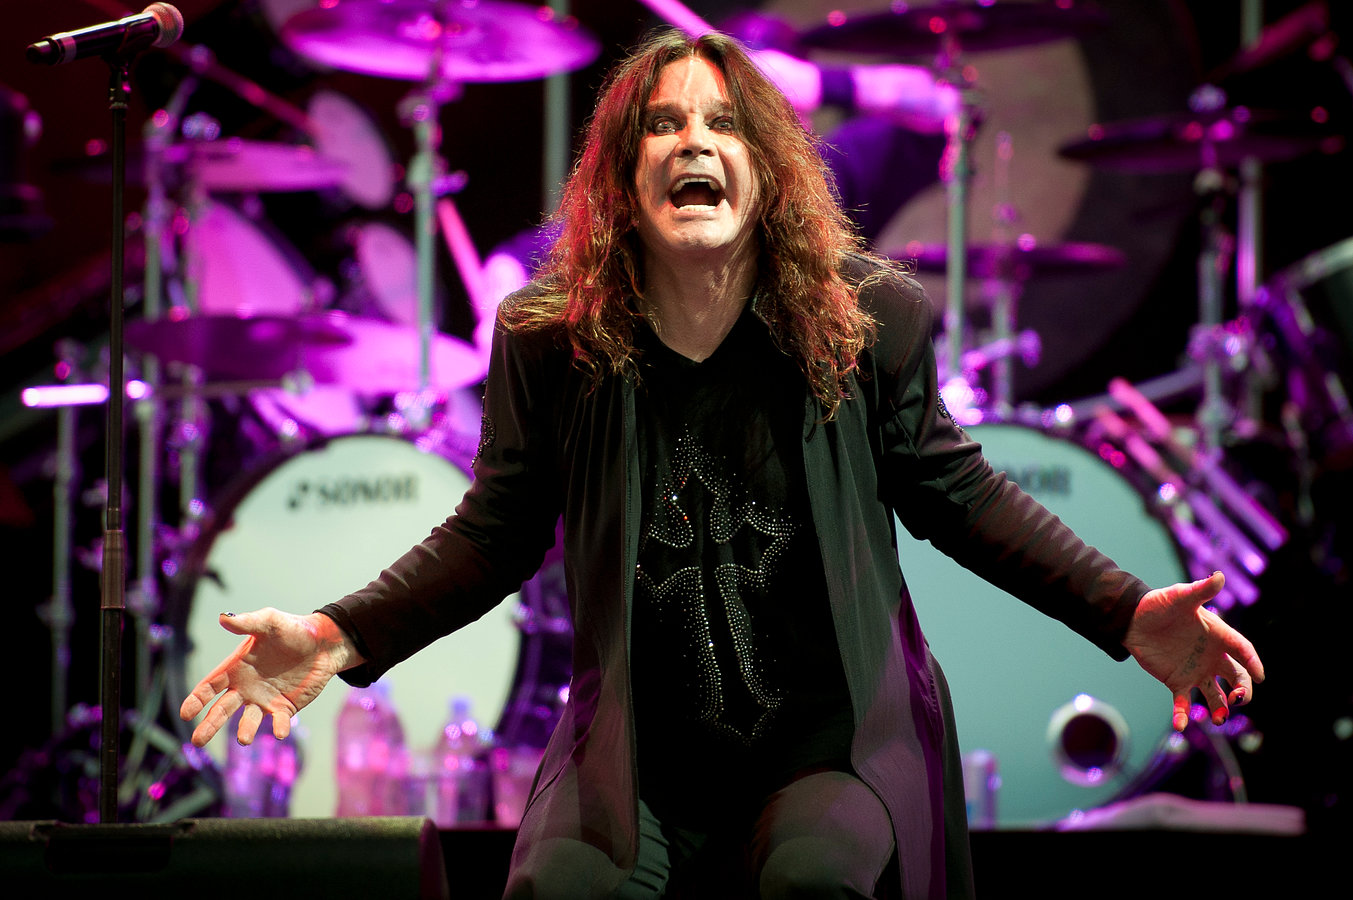 black_sabbath_at_download_festival_201201_website_image_rhse_standard